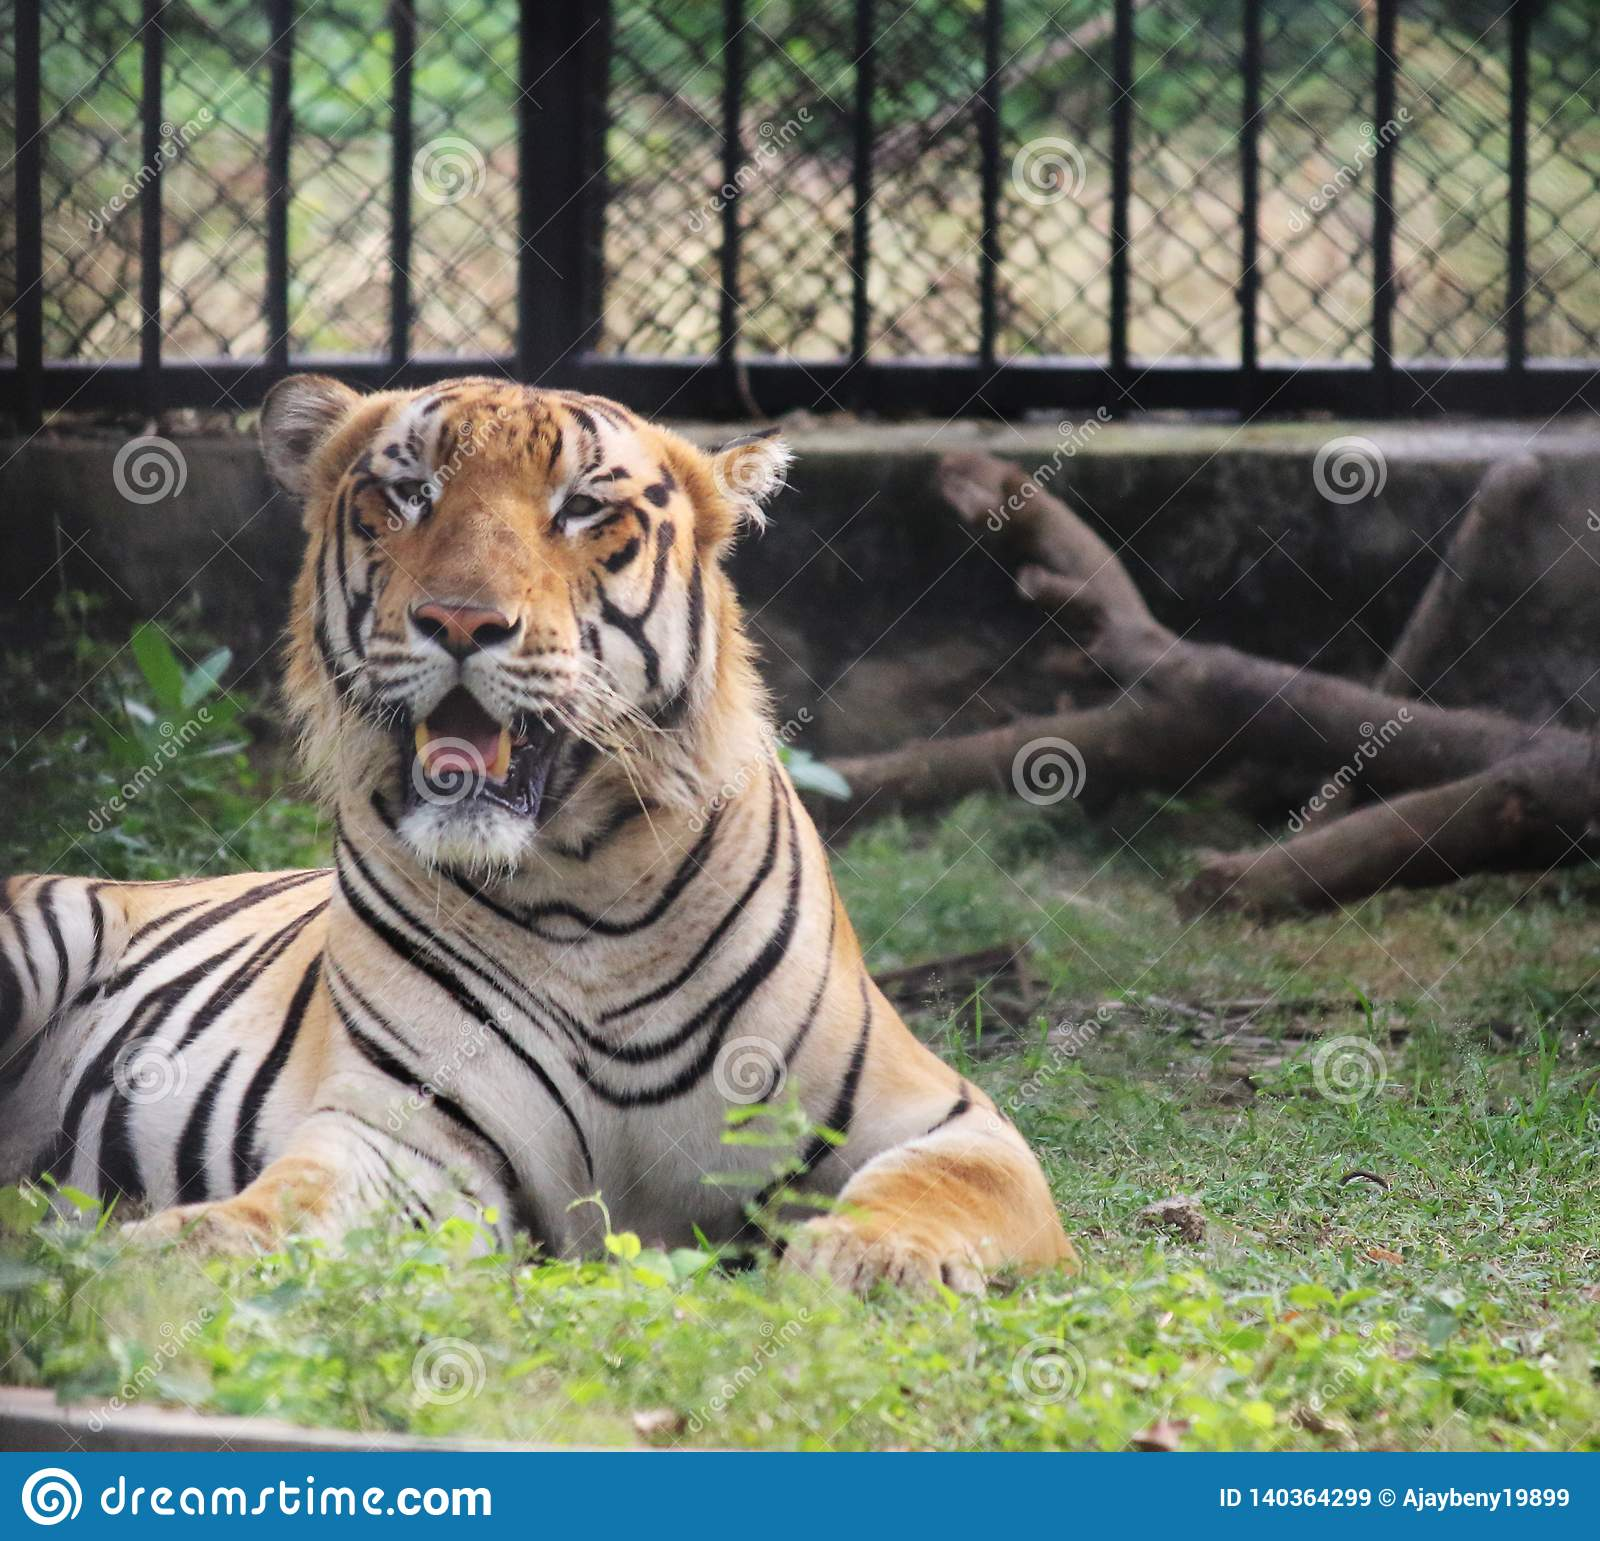 A royal Bengal Tiger Opening its Mouth